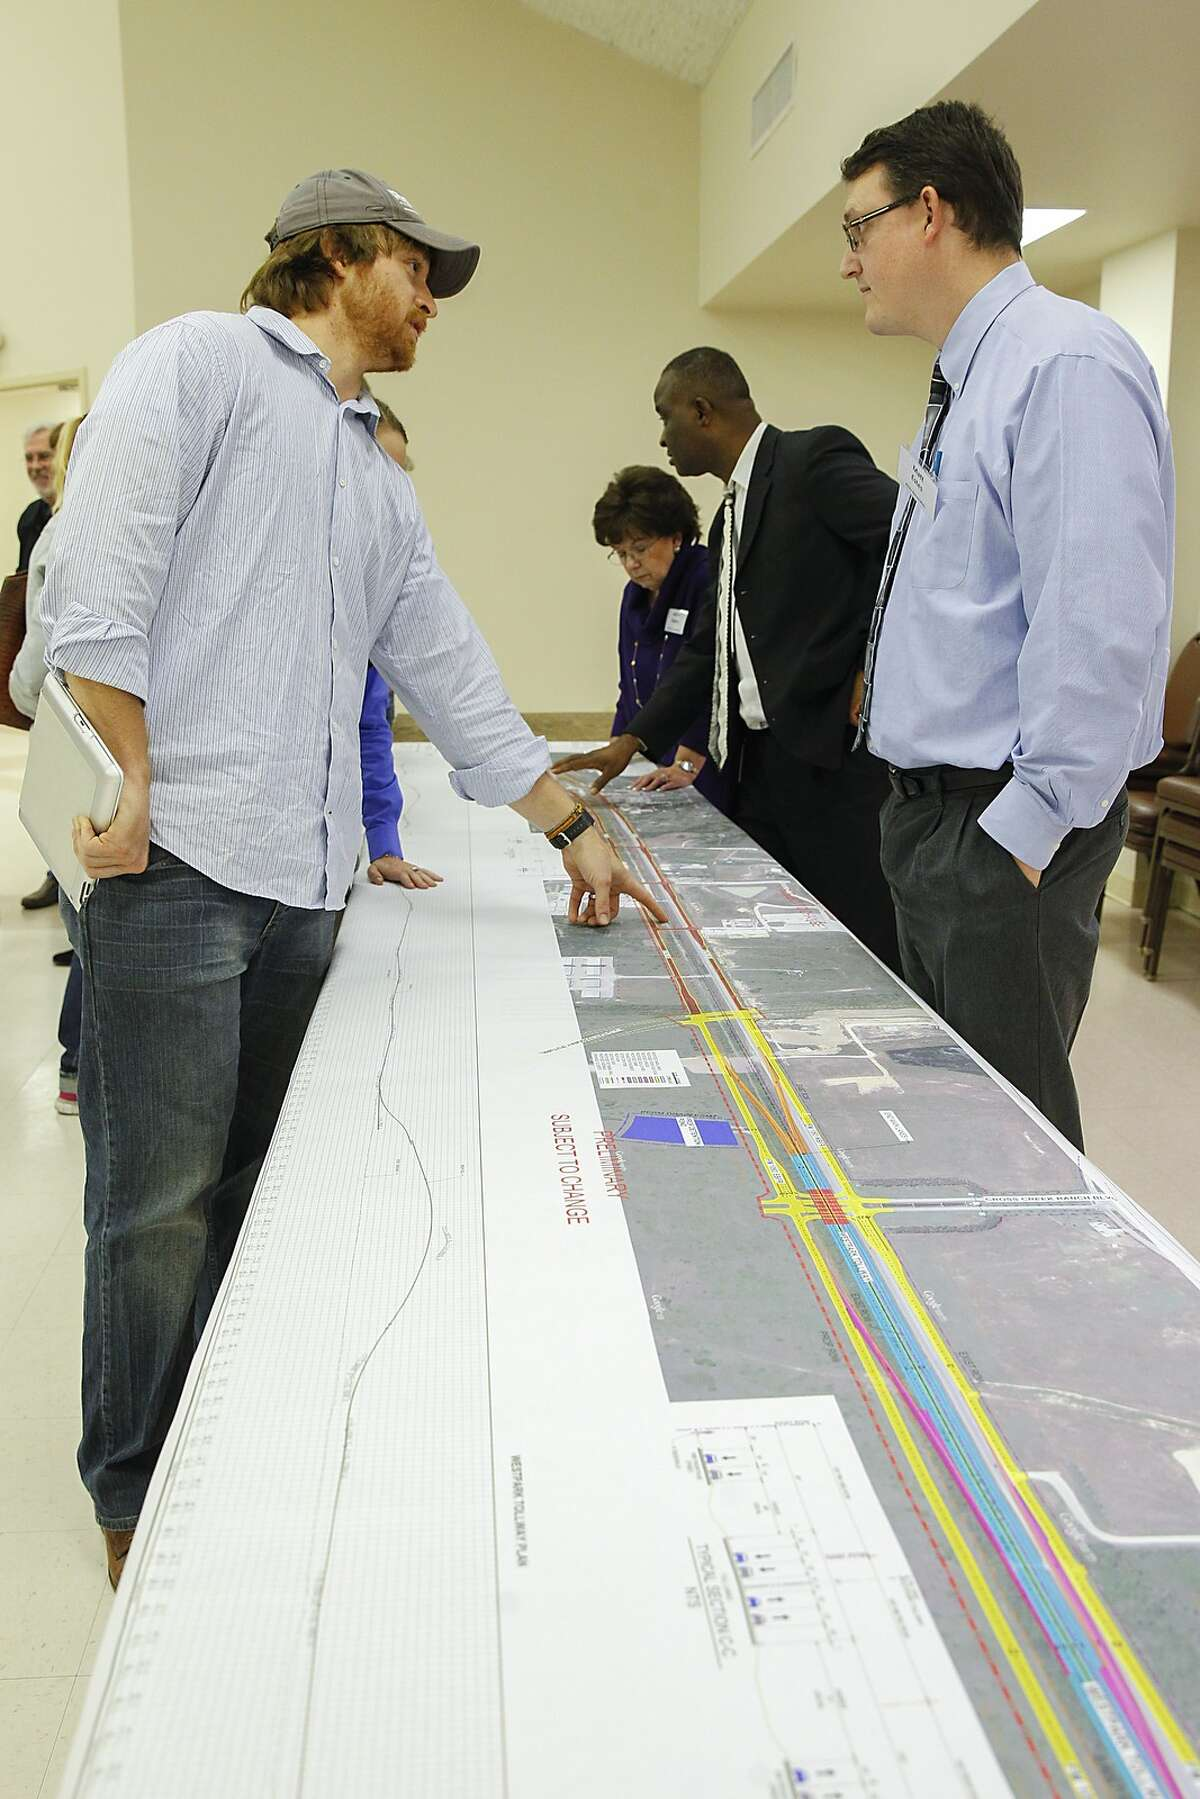 Eric Hauls of Fulshear discusses improvements and widening of FM 1093 and the Westpark Tollway into Fulshear with Matt Estes of Klotz Associates at a Dec. 9, 2014, open house of the TxDOT Houston District, in partnership with Fort Bend County at the Stern Community Center in Fulshear.Eric Hauls of Fulshear discusses improvements and widening of FM 1093 and the Westpark Tollway into Fulshear with Matt Estes of Klotz Associates at a Dec. 9, 2014, open house of the TxDOT Houston District, in partnership with Fort Bend County at the Stern Community Center in Fulshear.